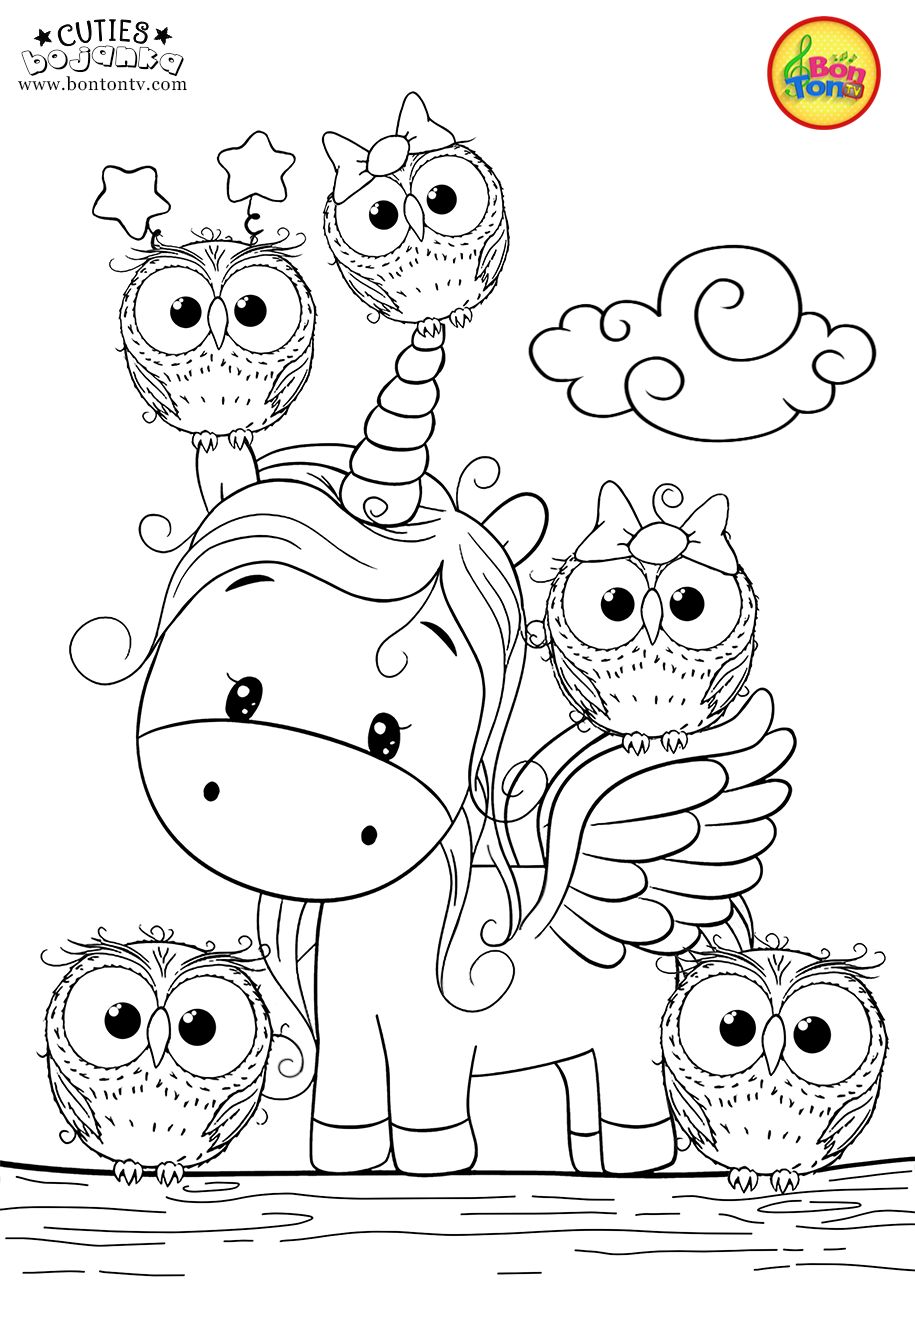 Good Images Coloring Books For Preschool Popular This Is Actually The Ultimate Help Guide Colouri In 2021 Unicorn Coloring Pages Baby Coloring Pages Owl Coloring Pages